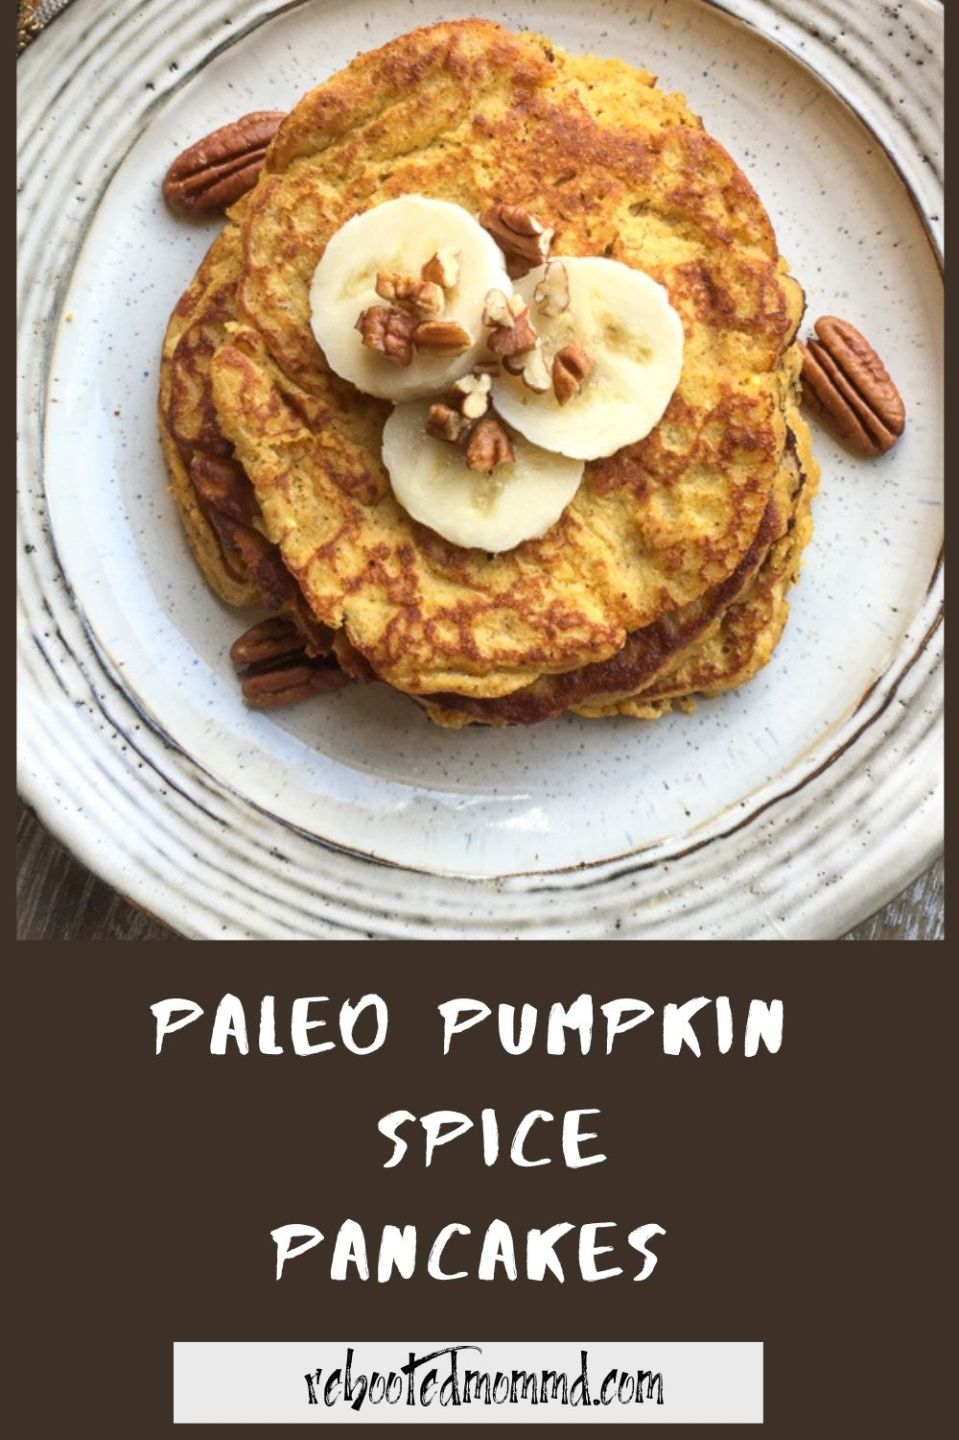 National Pumpkin Day: Paleo Pumpkin Spice Pancakes